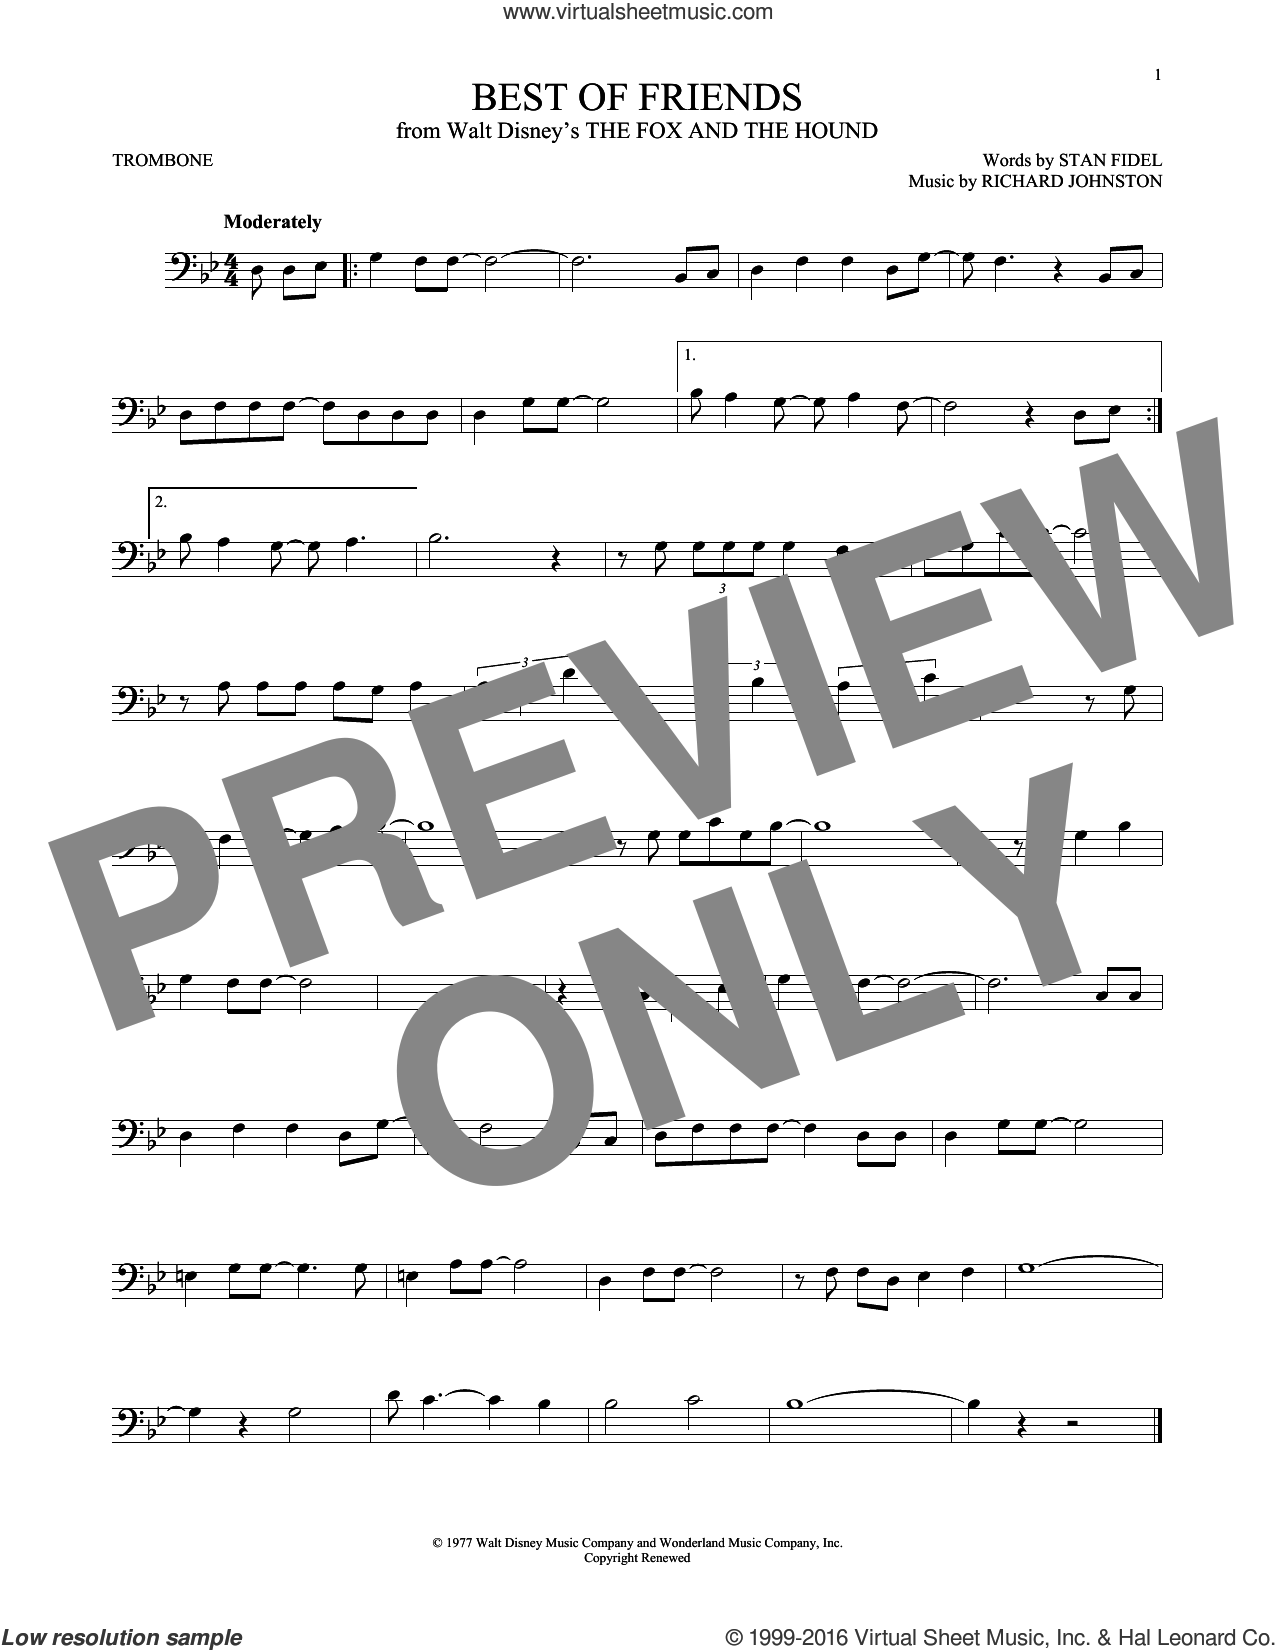 Best Of Friends sheet music for trombone solo by Stan Fidel and Richard Johnston. Score Image Preview.